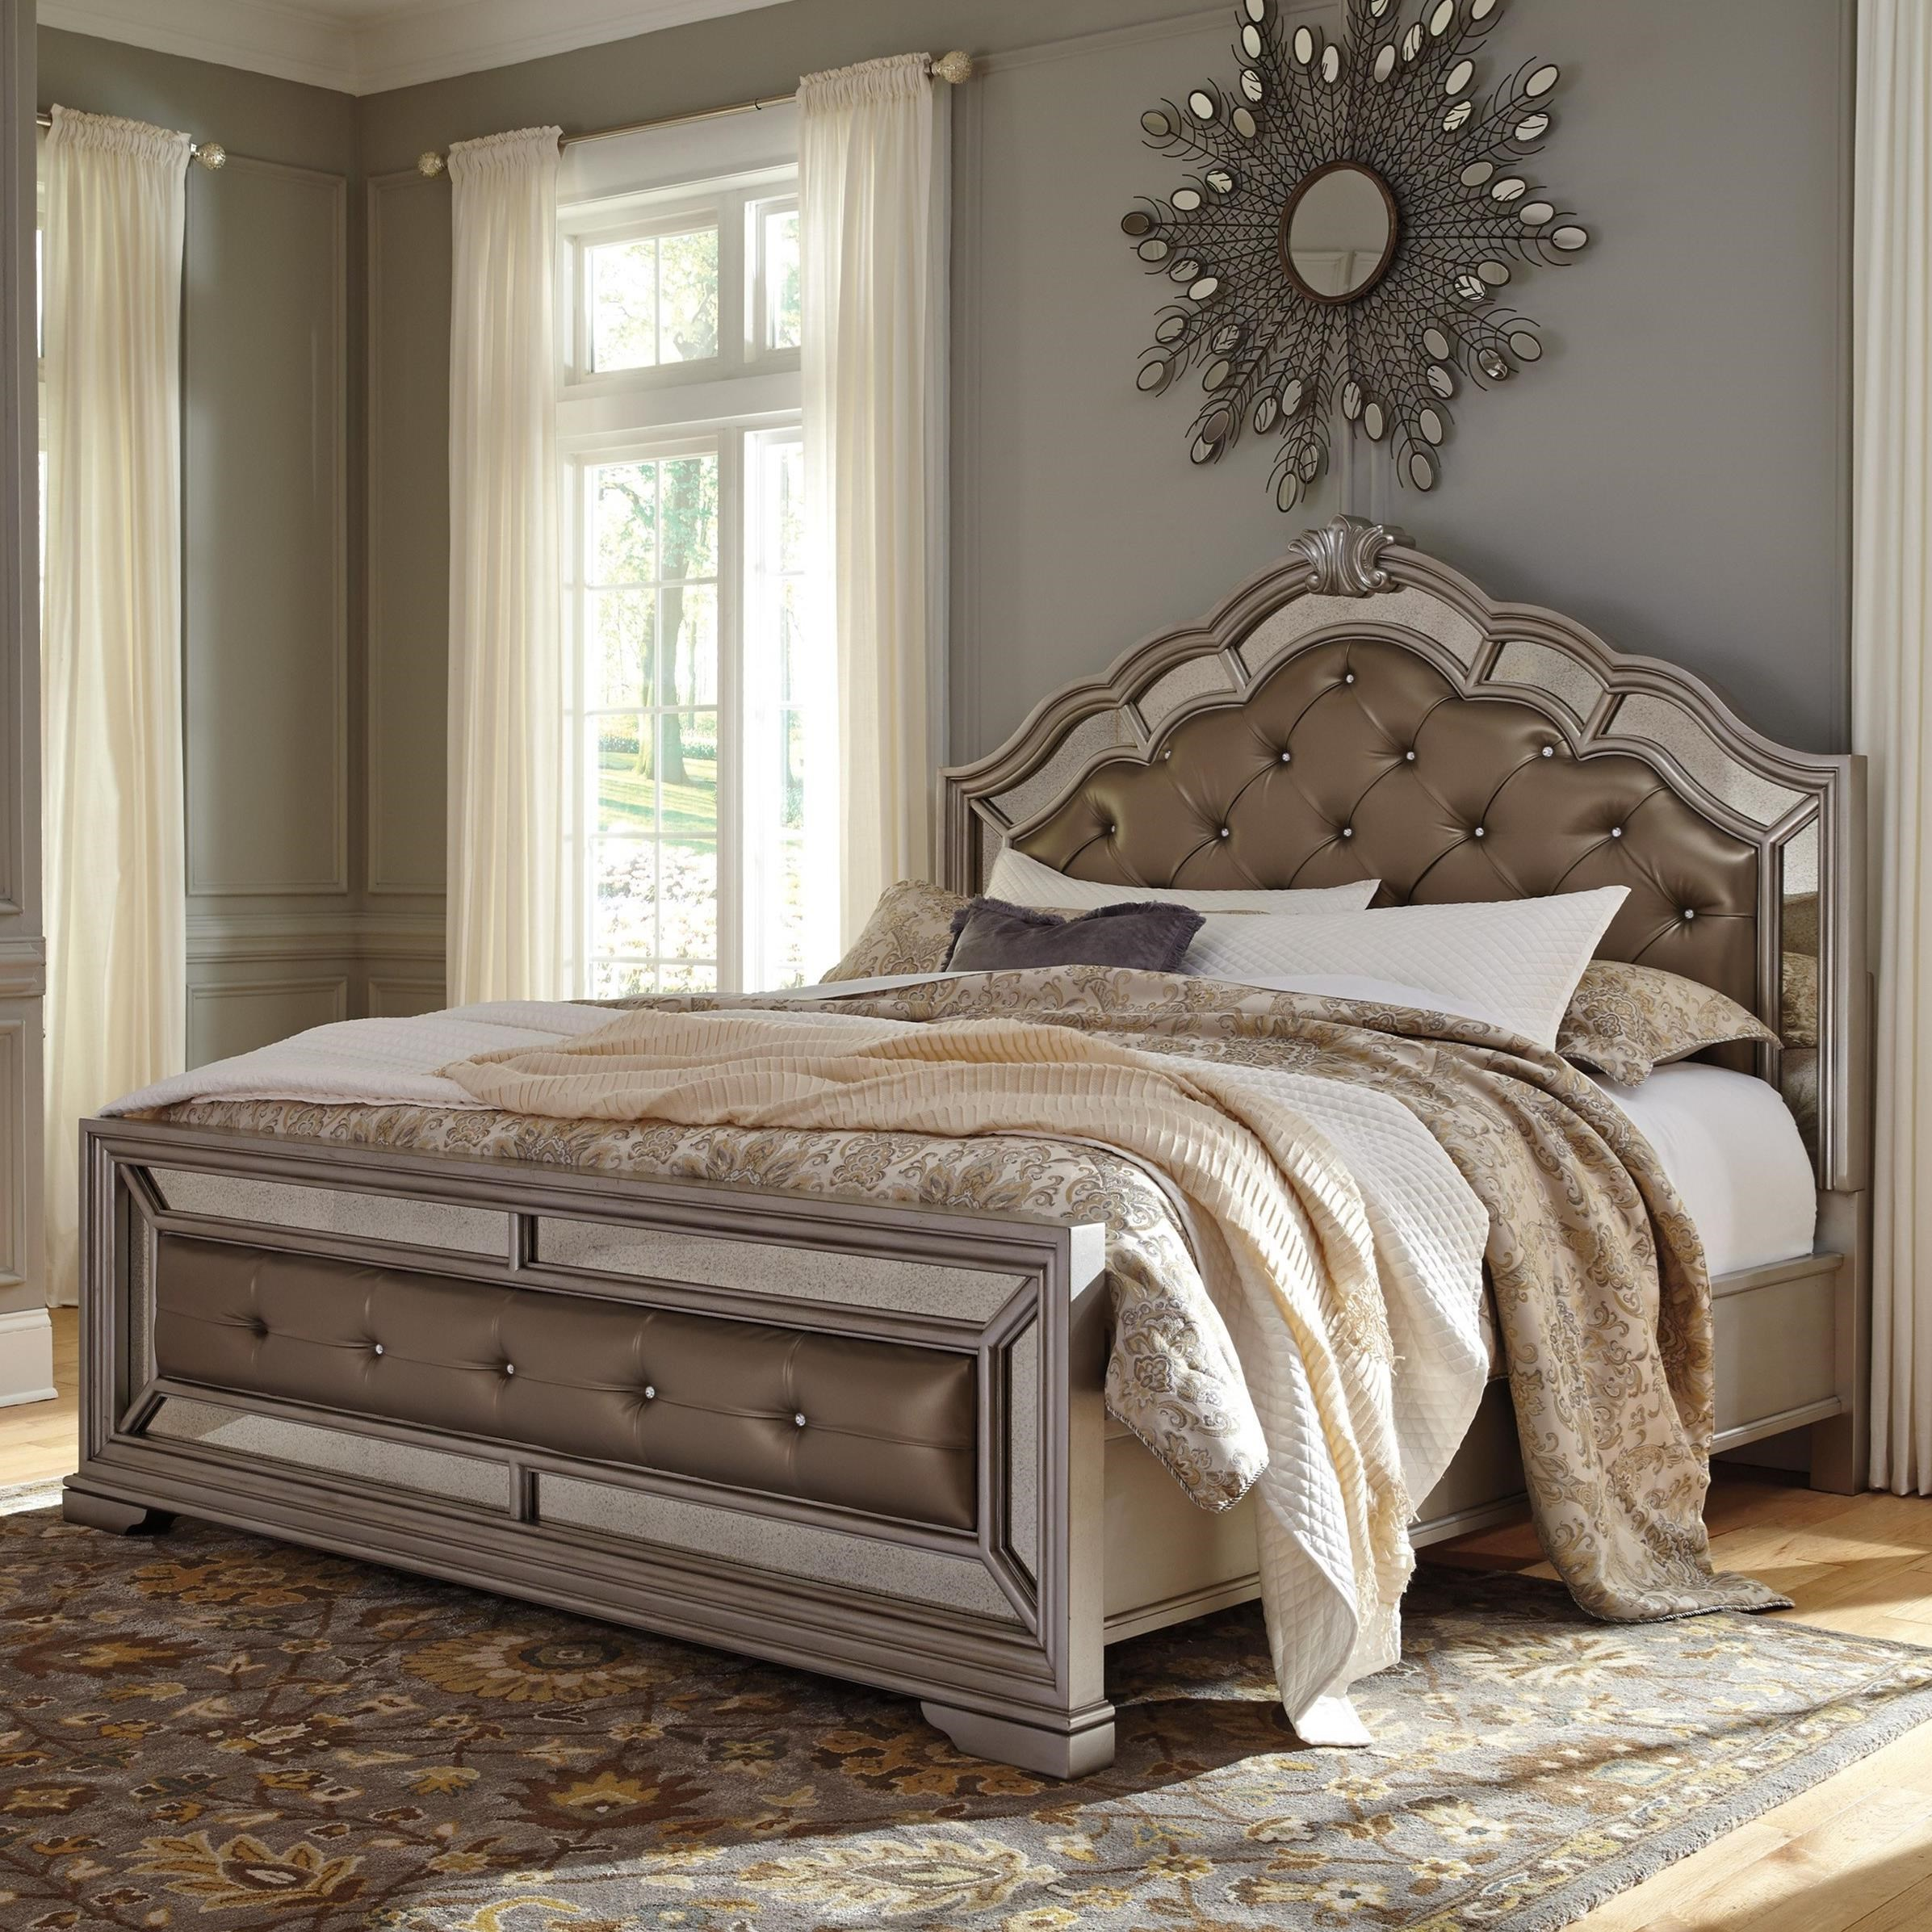 Signature Design by Ashley Birlanny Queen Upholstered Bed in Silver